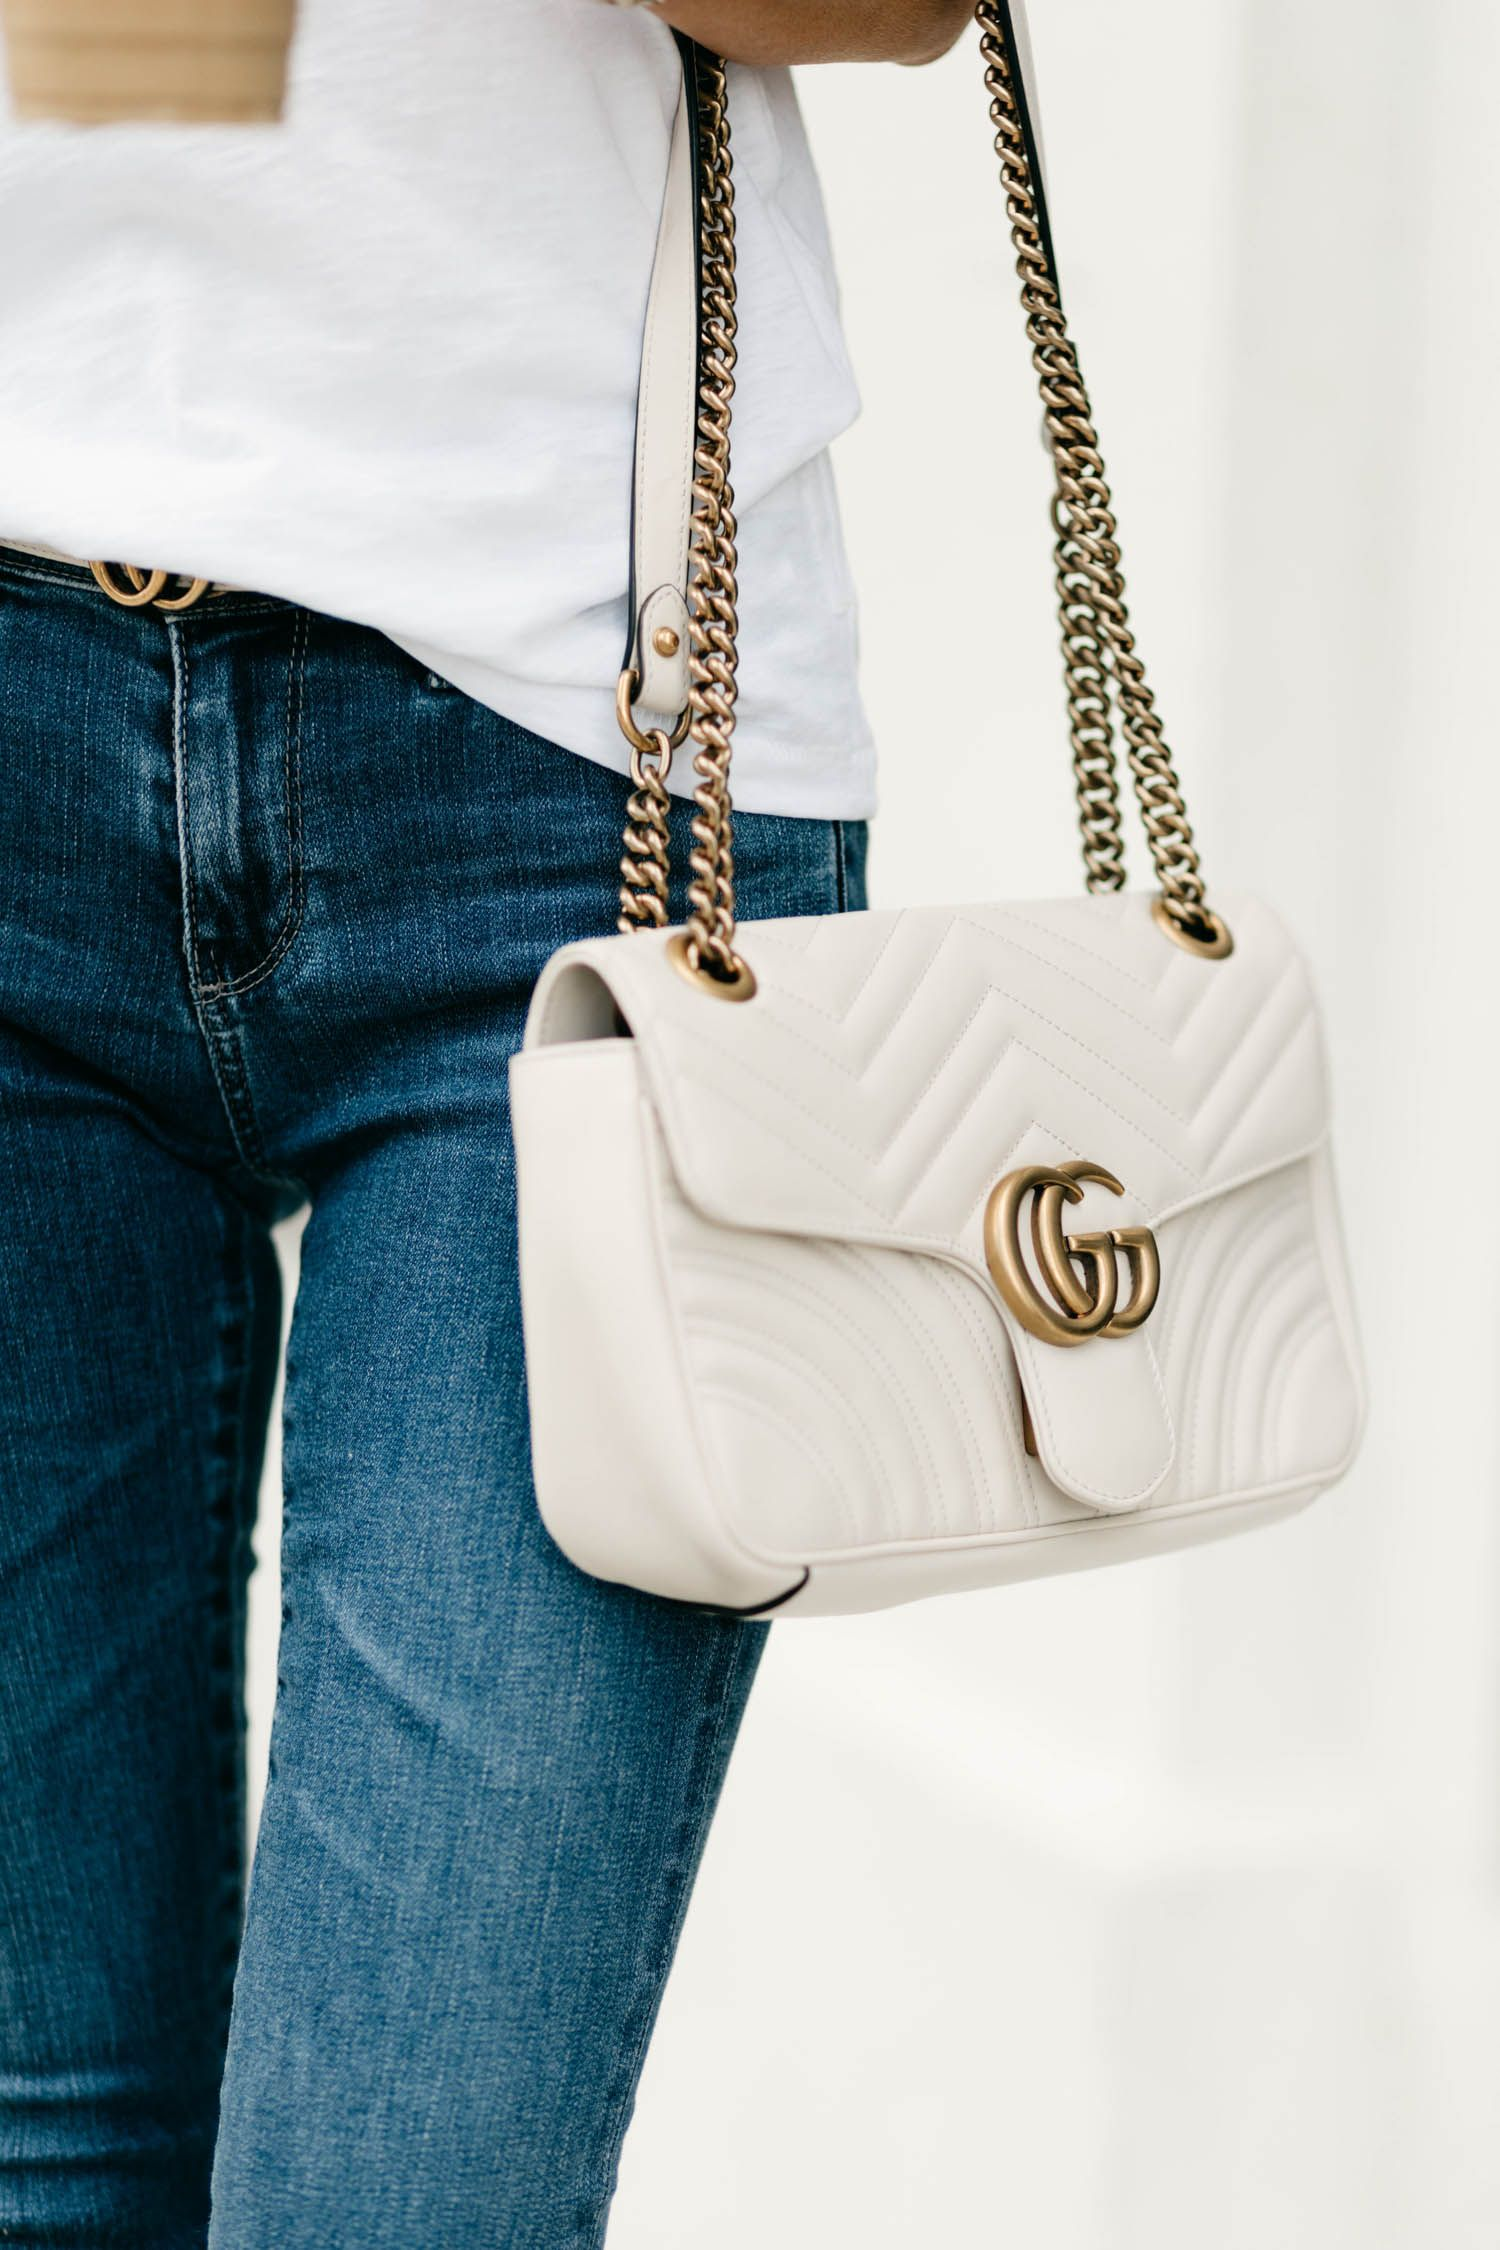 5 Basics Every Girl Should Invest In  02d9924c85b11